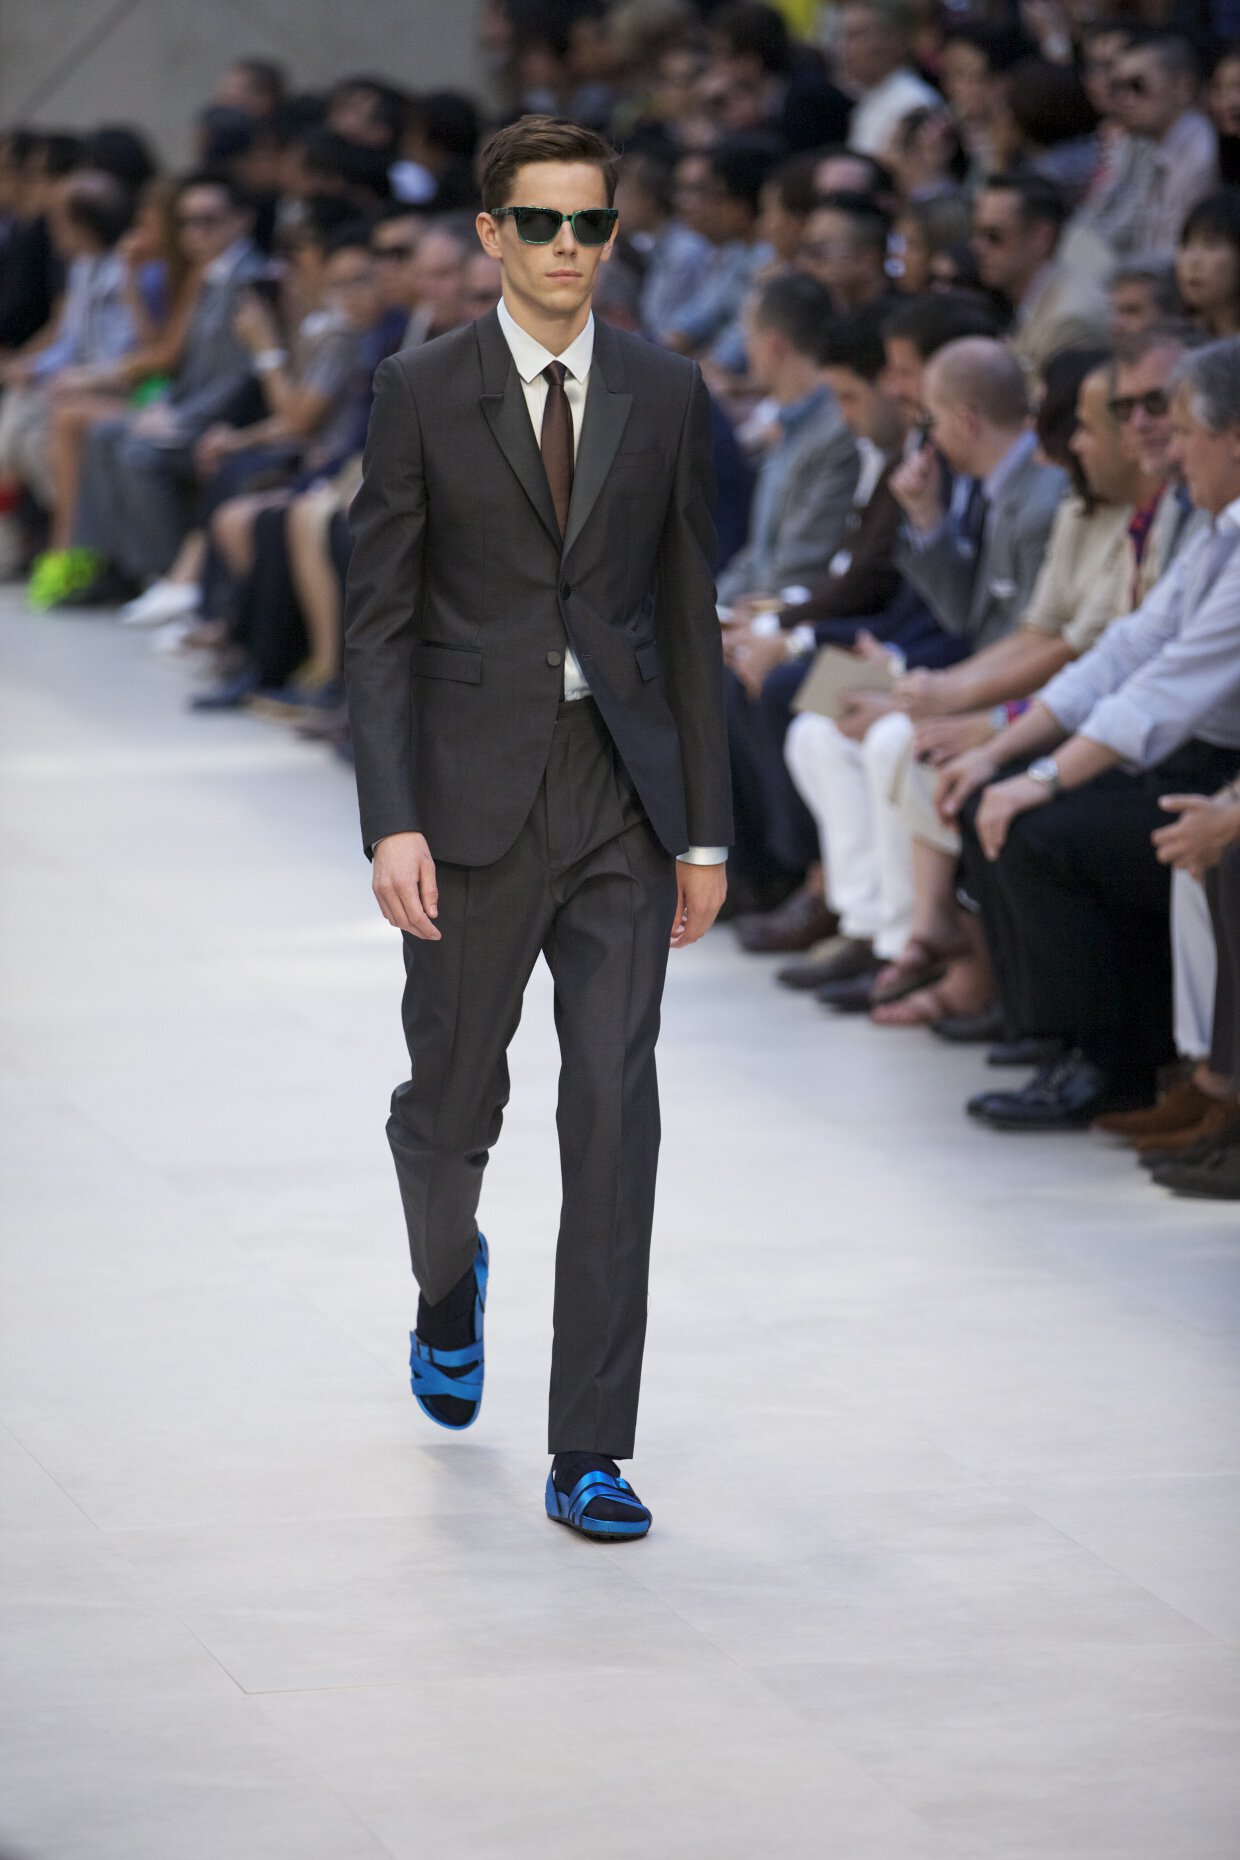 Burberry Prorsum 2013 - Tailored Mohair Wool Suit